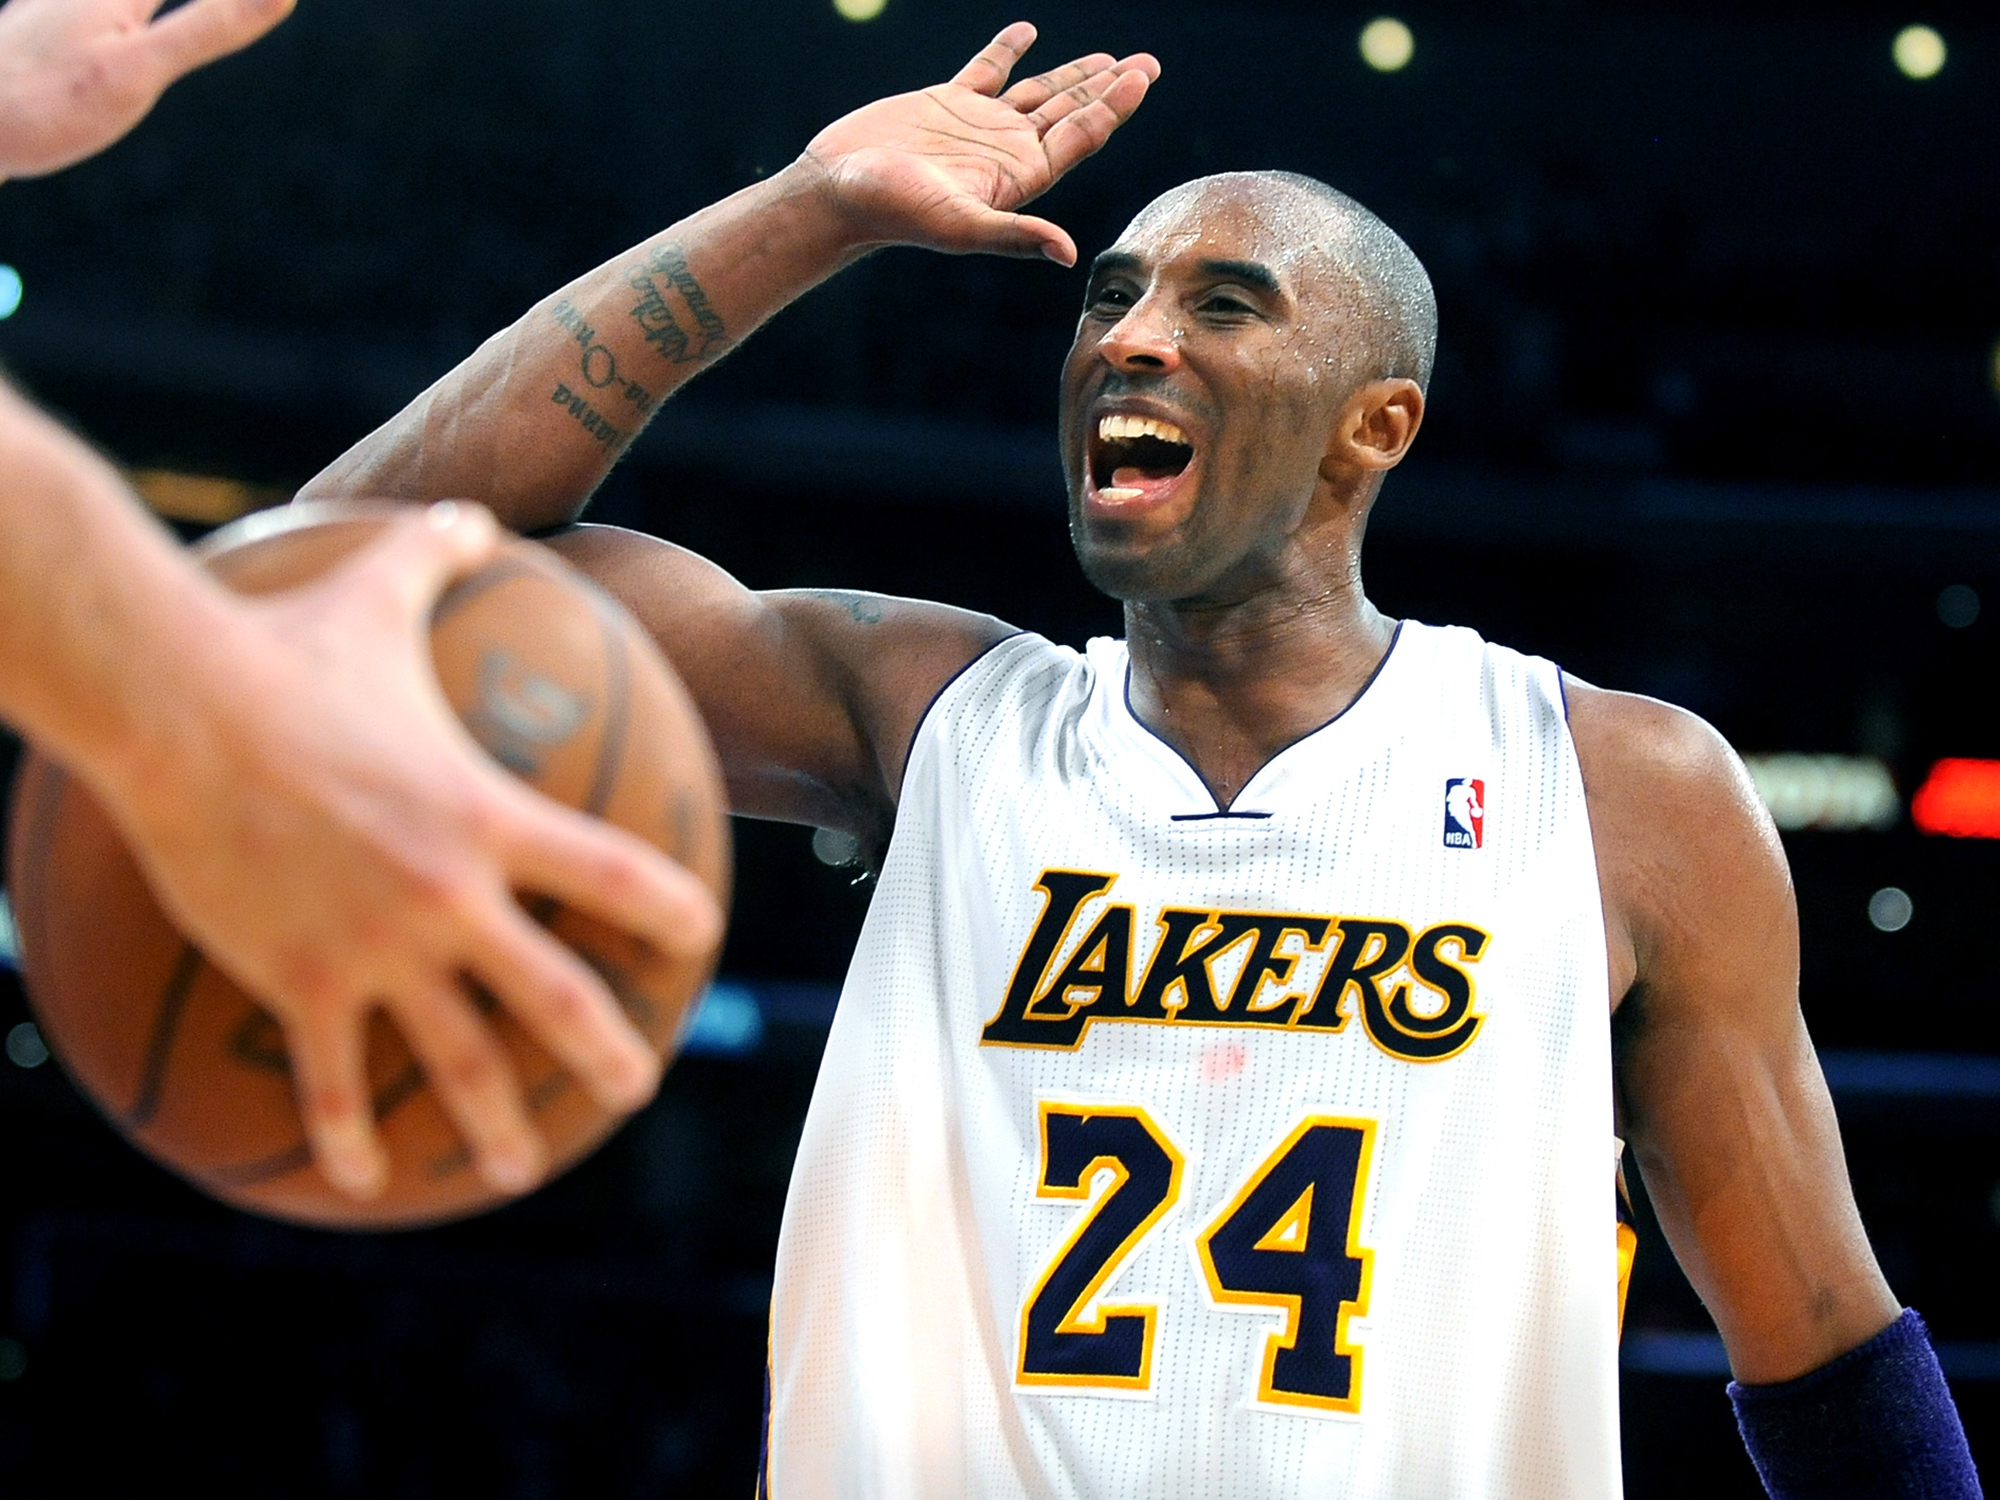 f42b74842 Lakers Kobe Bryant celebrates with teamate Pau Gasol while defeating the  Thunder in overtime at the